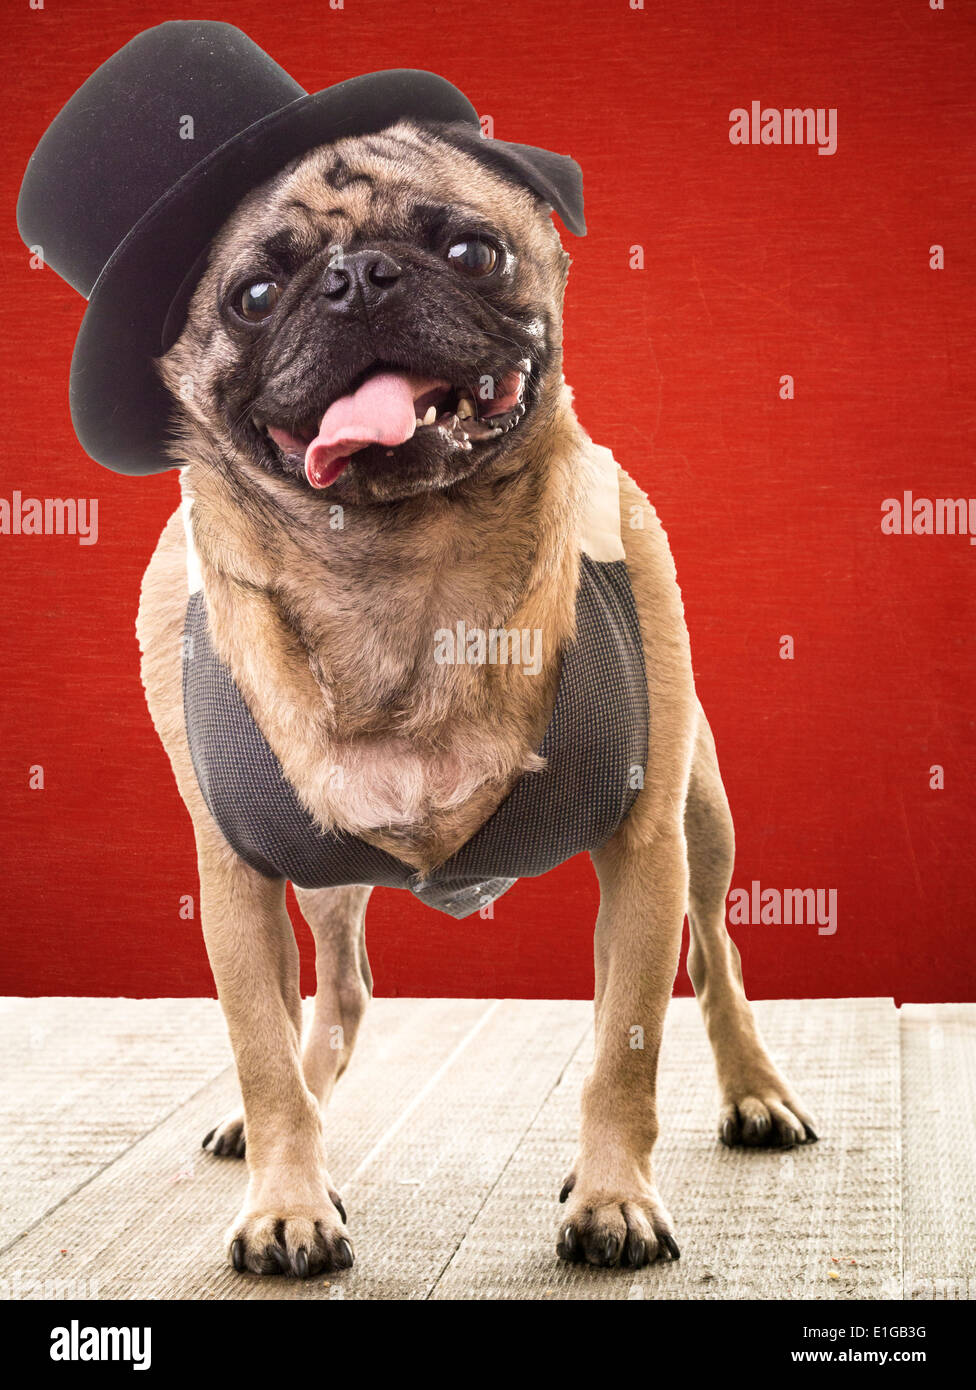 A friendly comical pug wearing a top hat and vest. - Stock Image